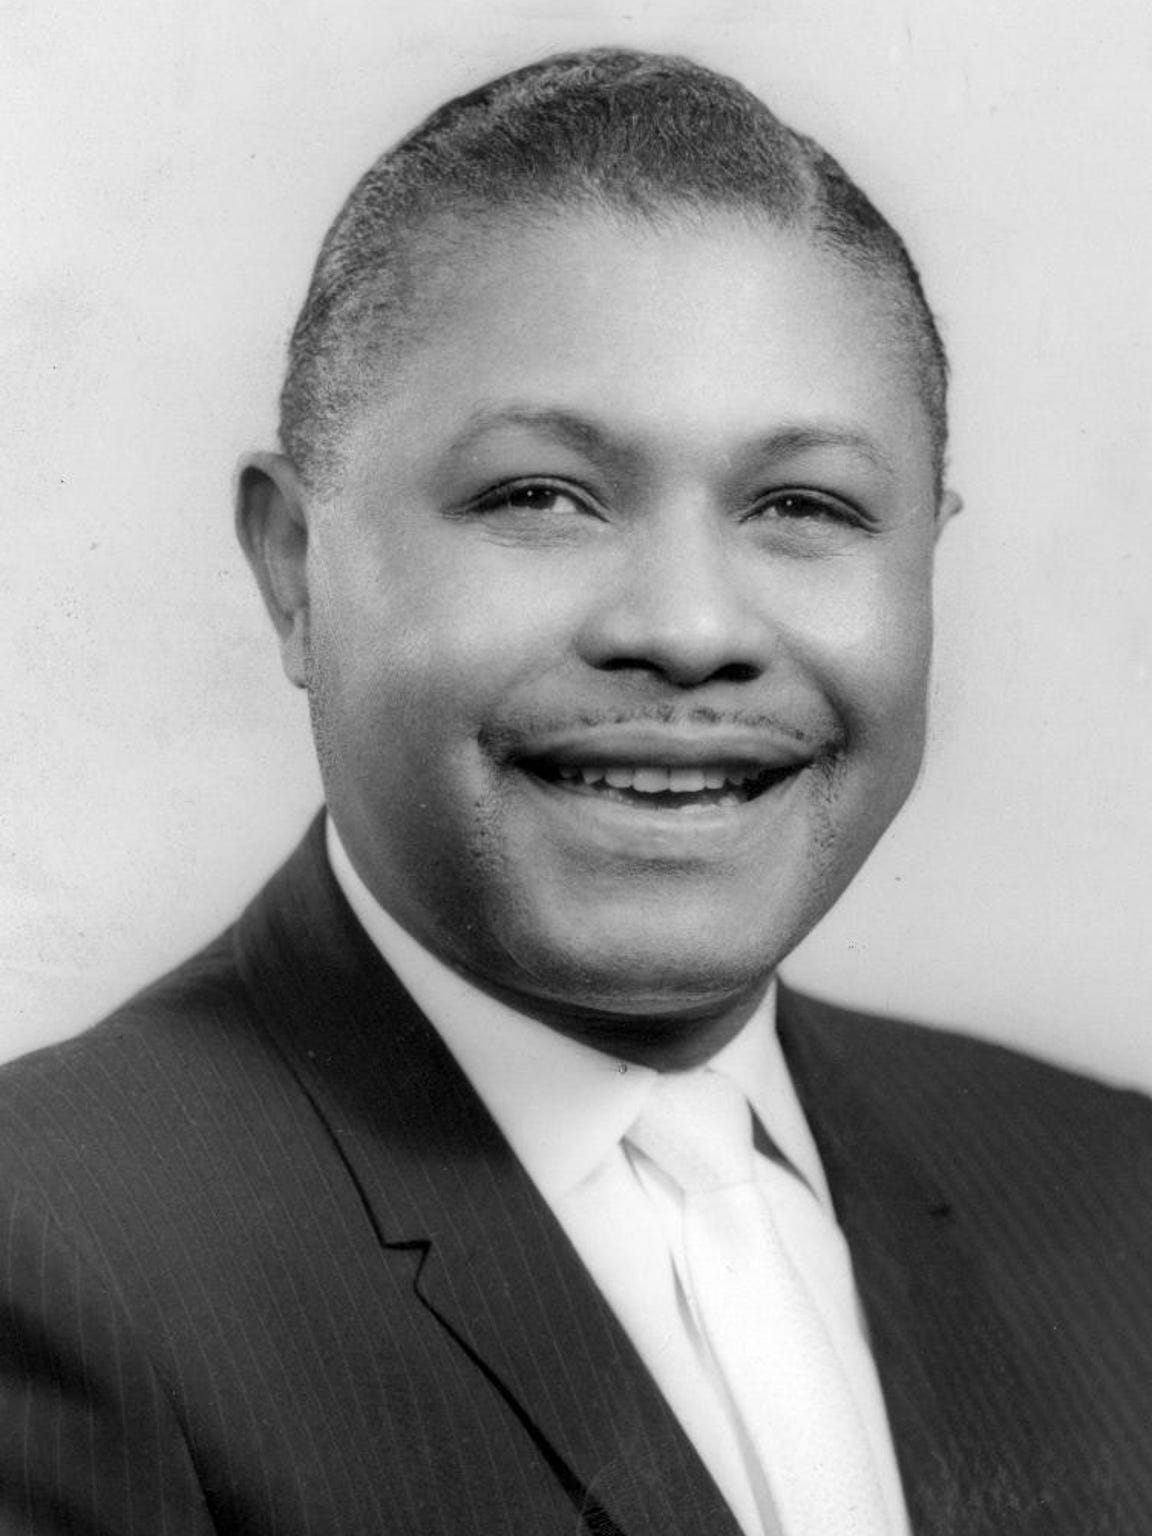 Rev. C.L. Franklin, 1965.